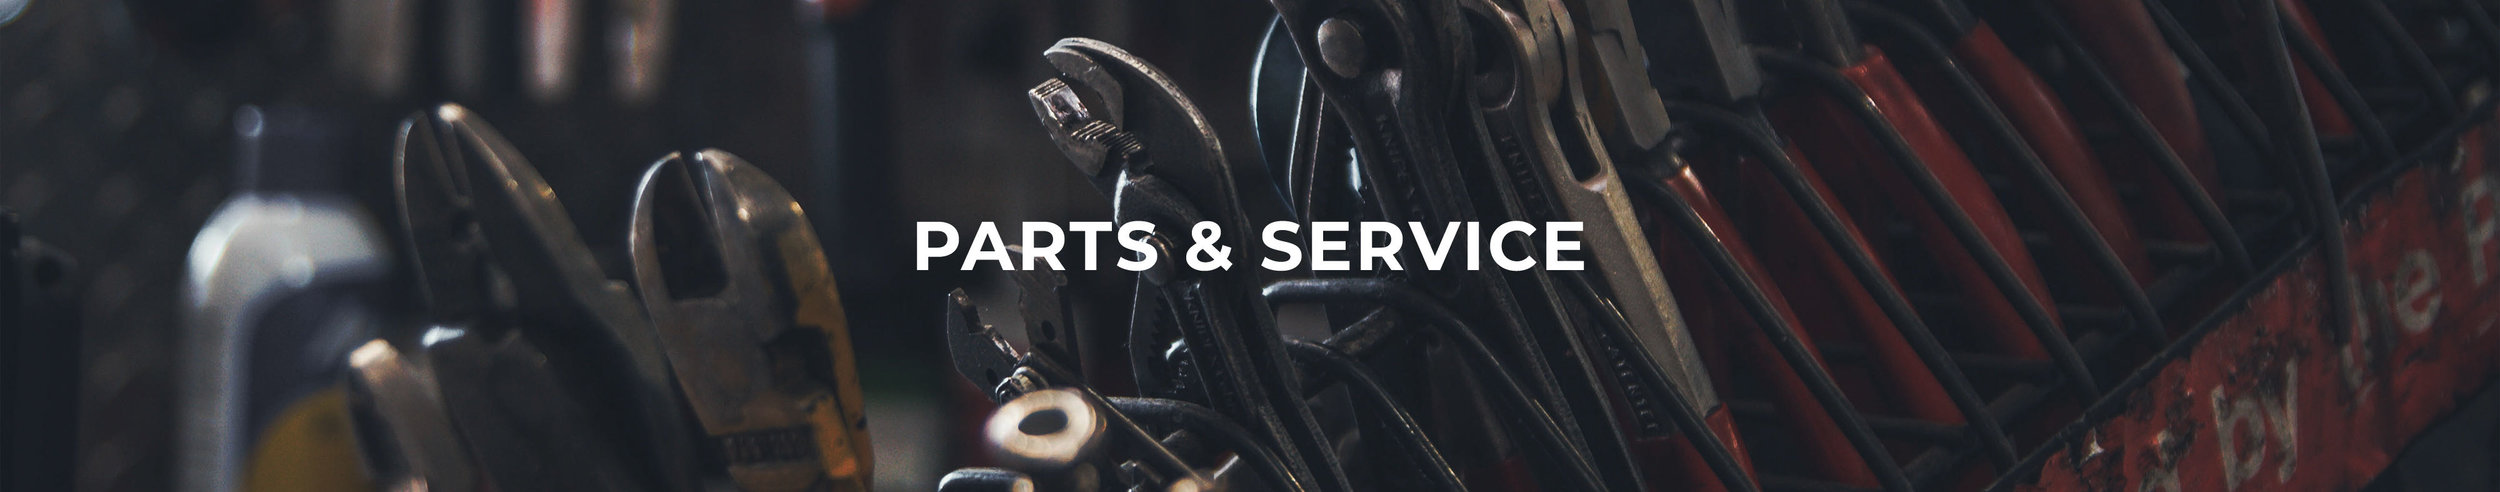 Parts & Service header image for mower repair shops near Wellington and Ashland, Ohio.